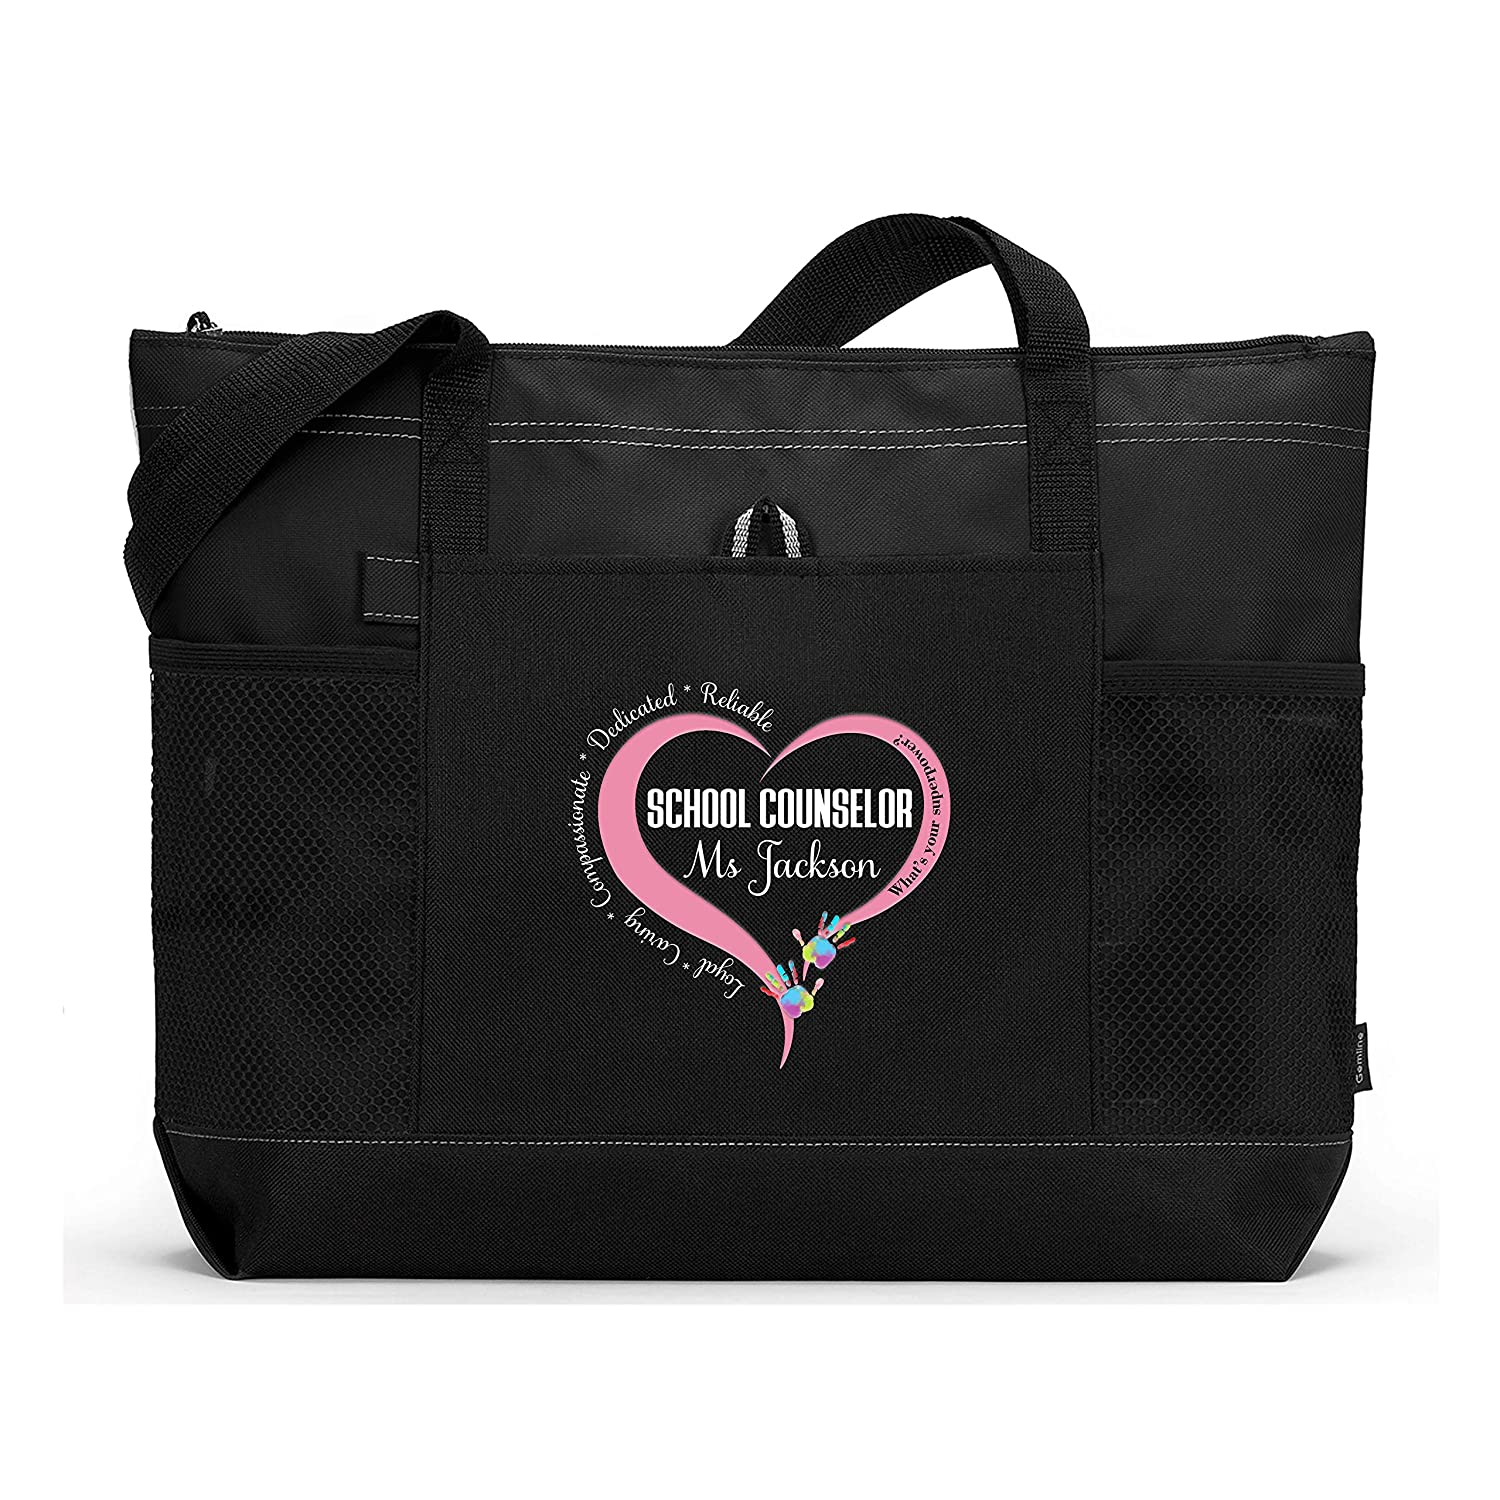 School Counselor Loyal Caring Compassionate Personalized Printed Tote Bag with Mesh Pockets